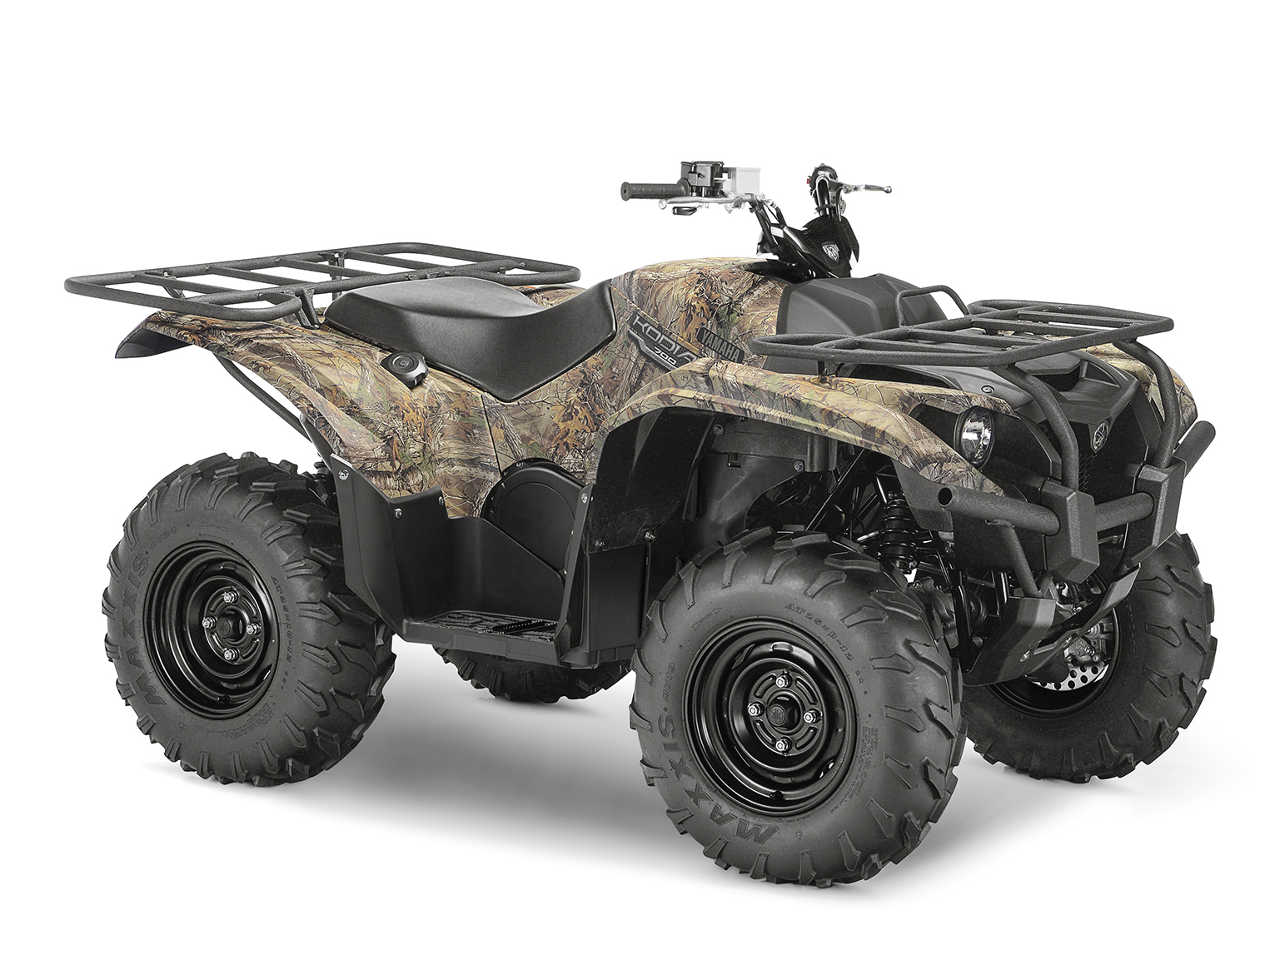 Yamaha Kodiak X Reviews